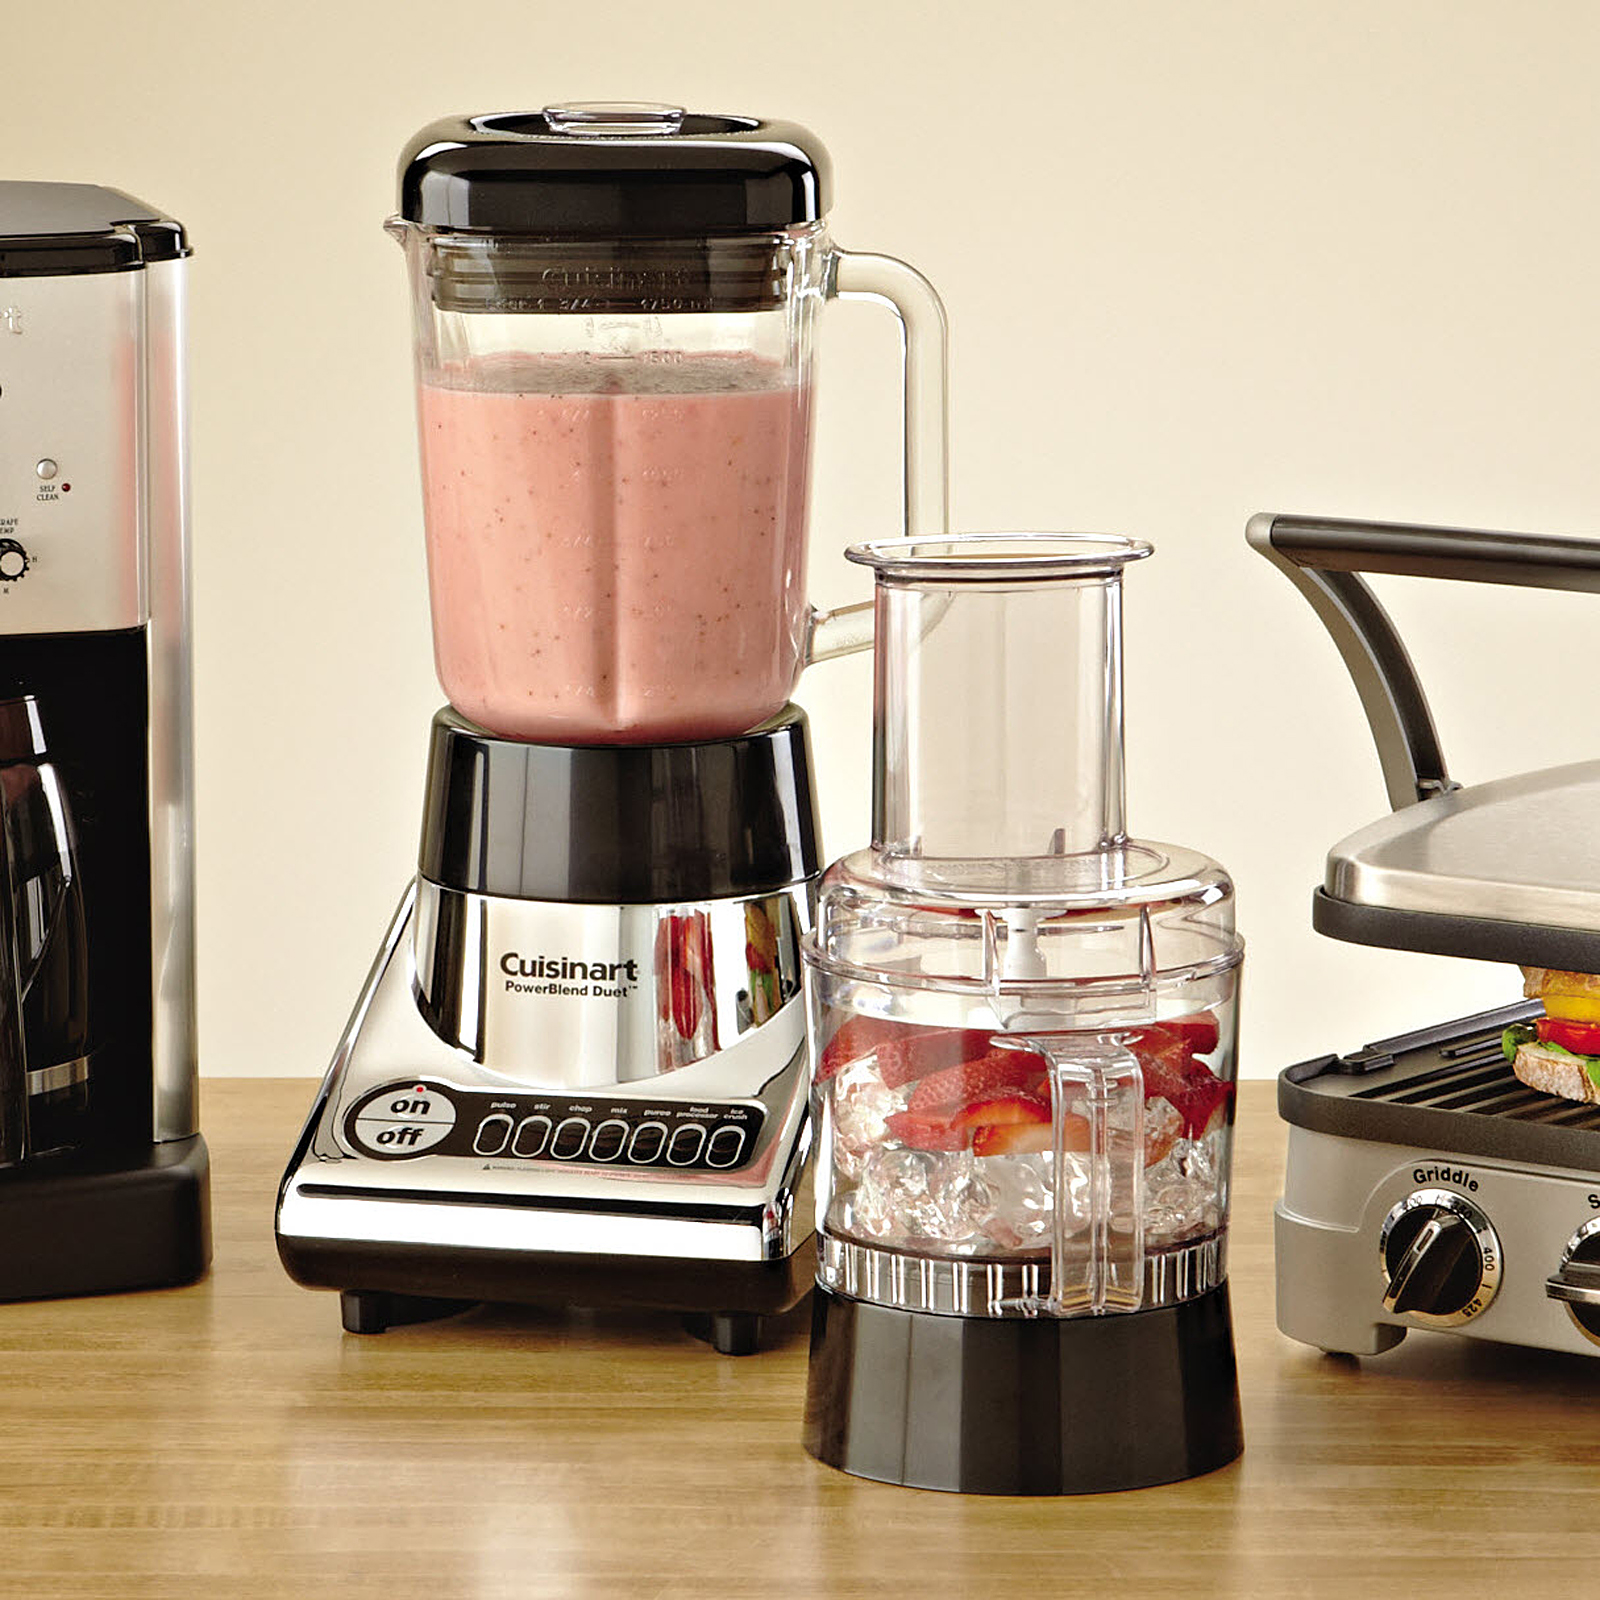 Cuisinart PowerBlend Duet Blender/Food Processor